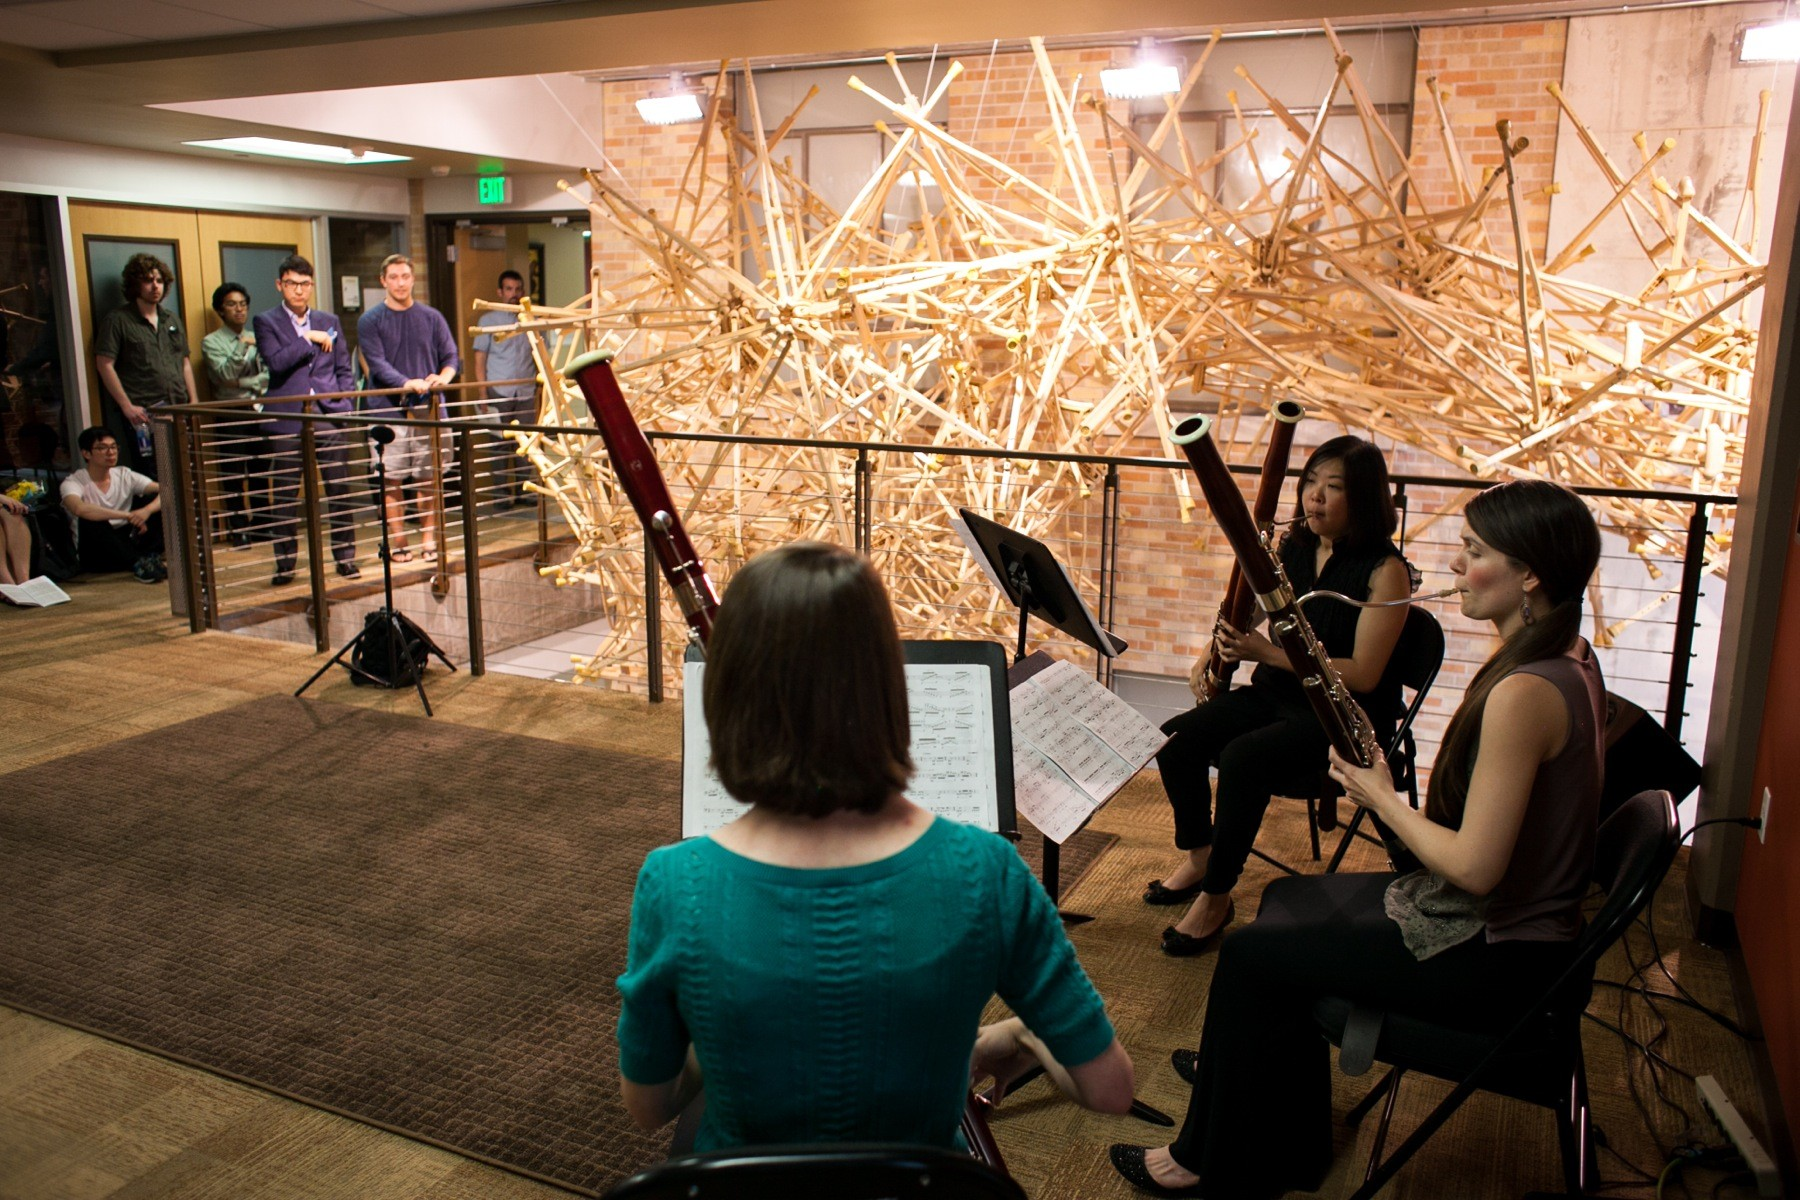 People performing with oboes next to a hanging sculpture made out of wooden crutches